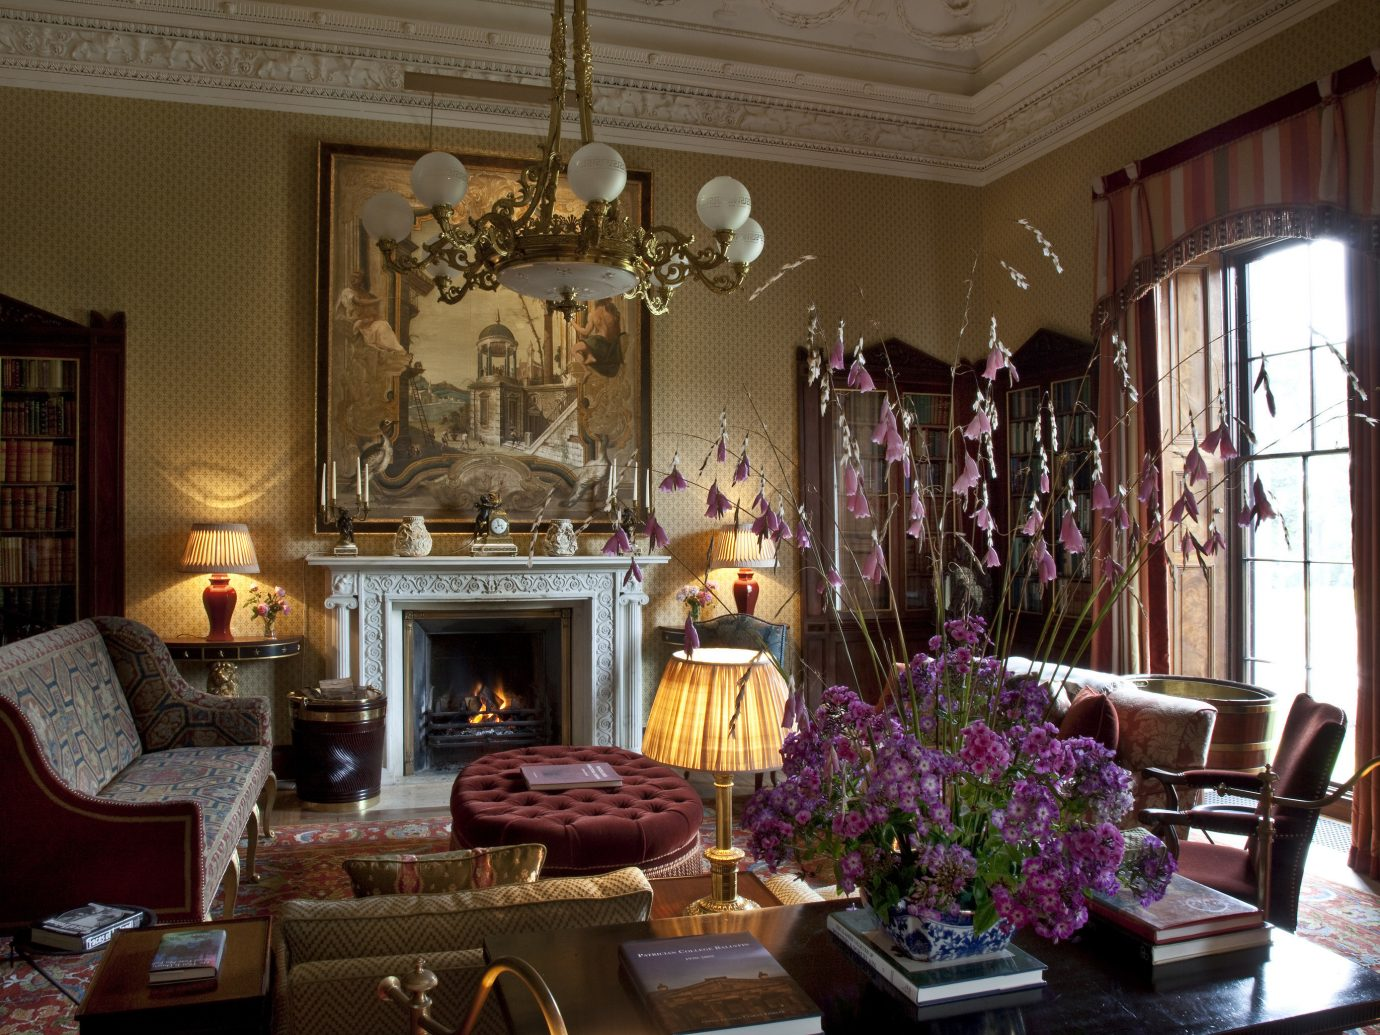 Living room at Ballyfin in Ireland